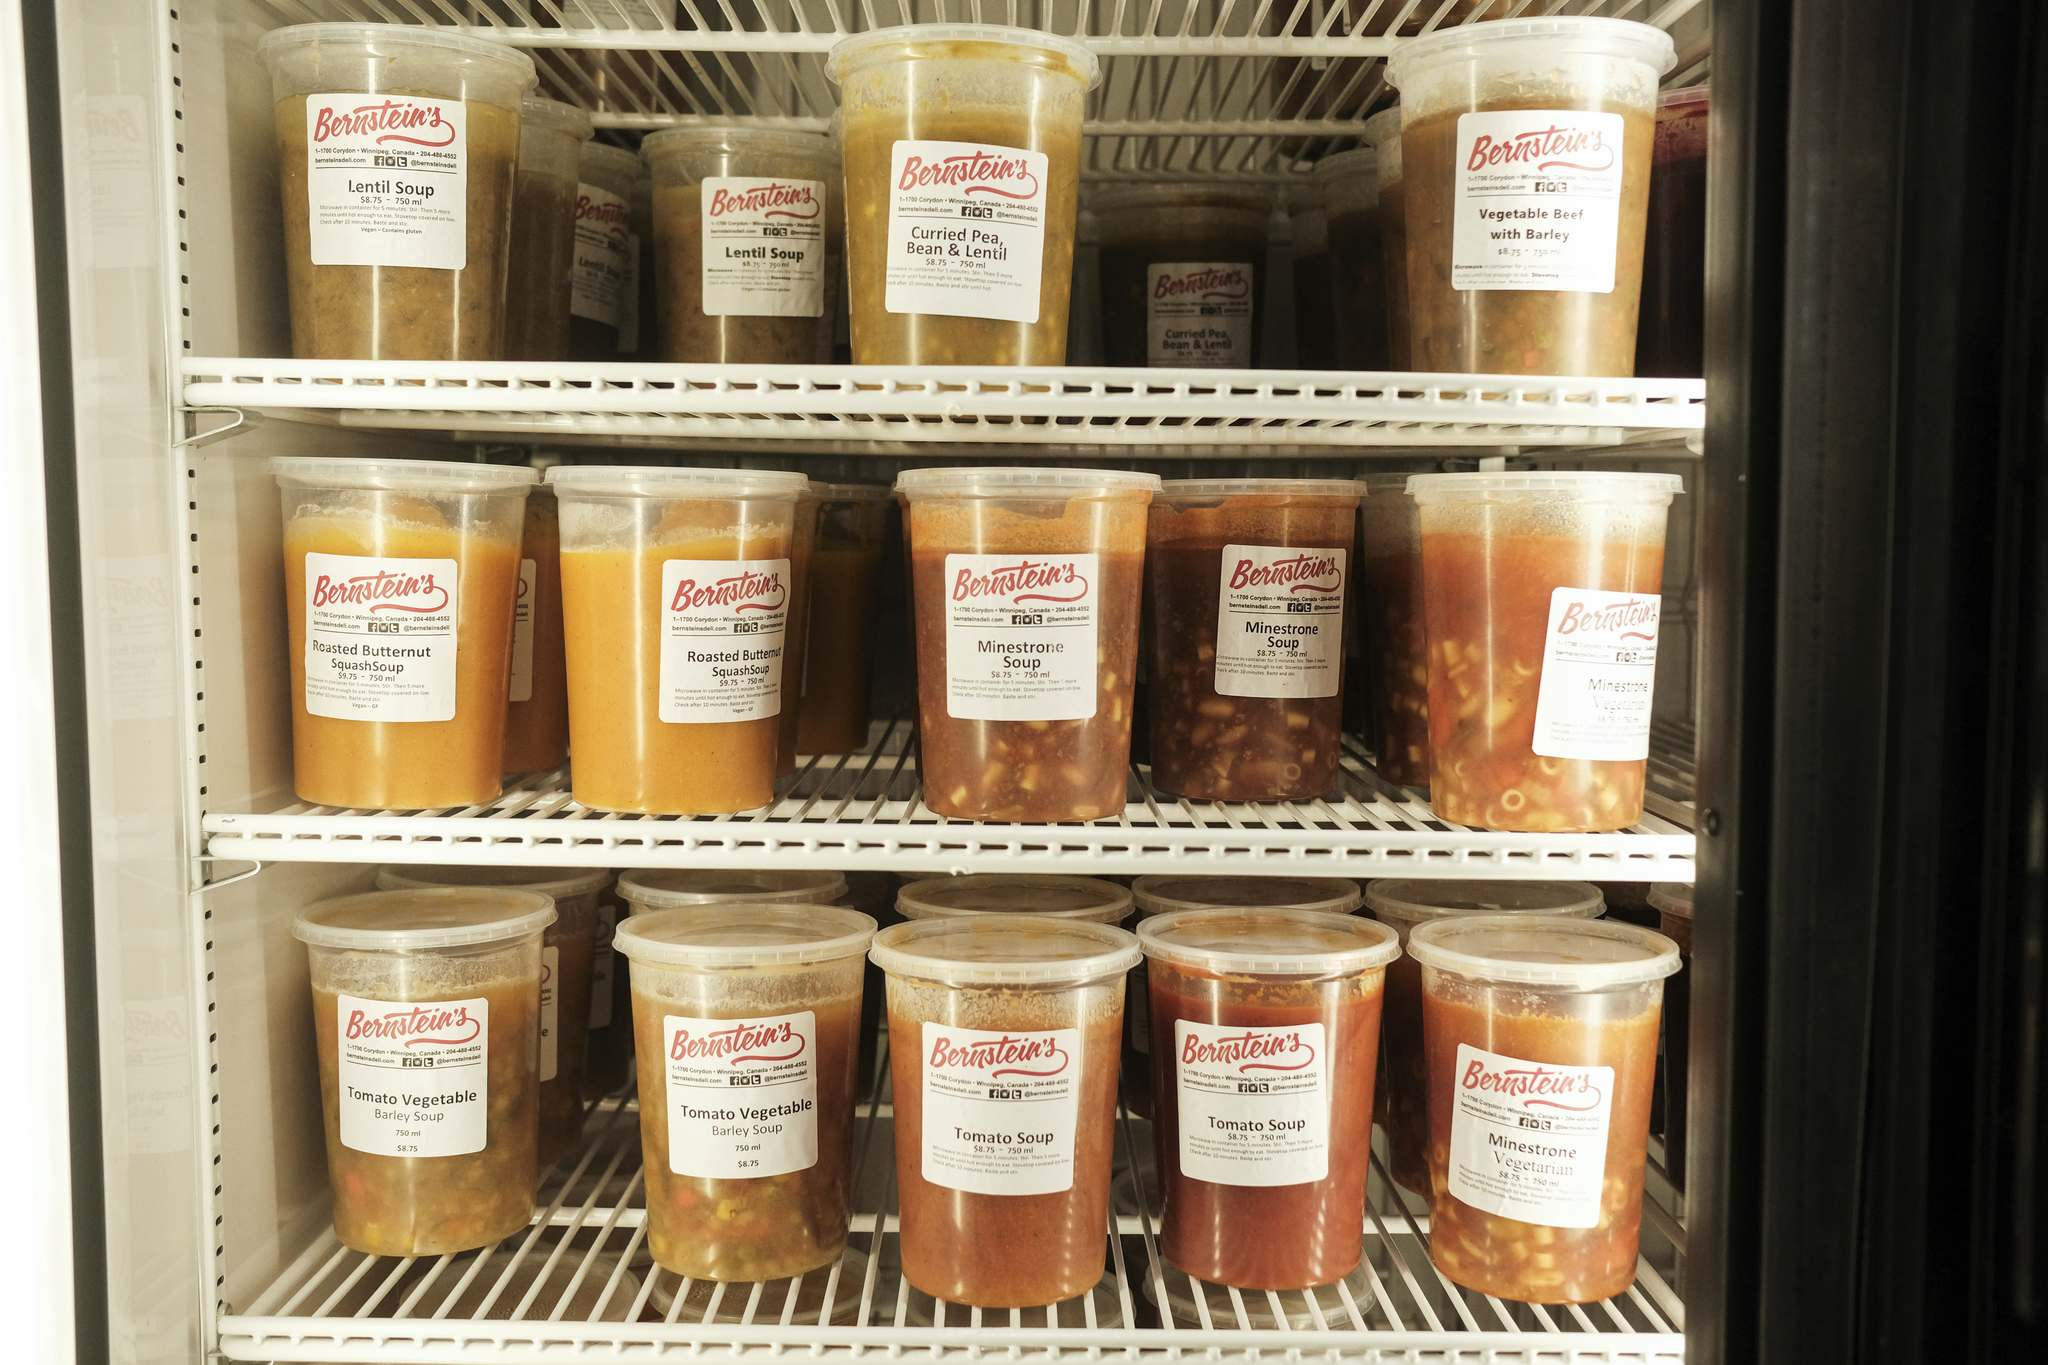 MIKE SUDOMA / WINNIPEG FREE PRESS</p><p>A fully stocked shelf of freshly made soups.</p>